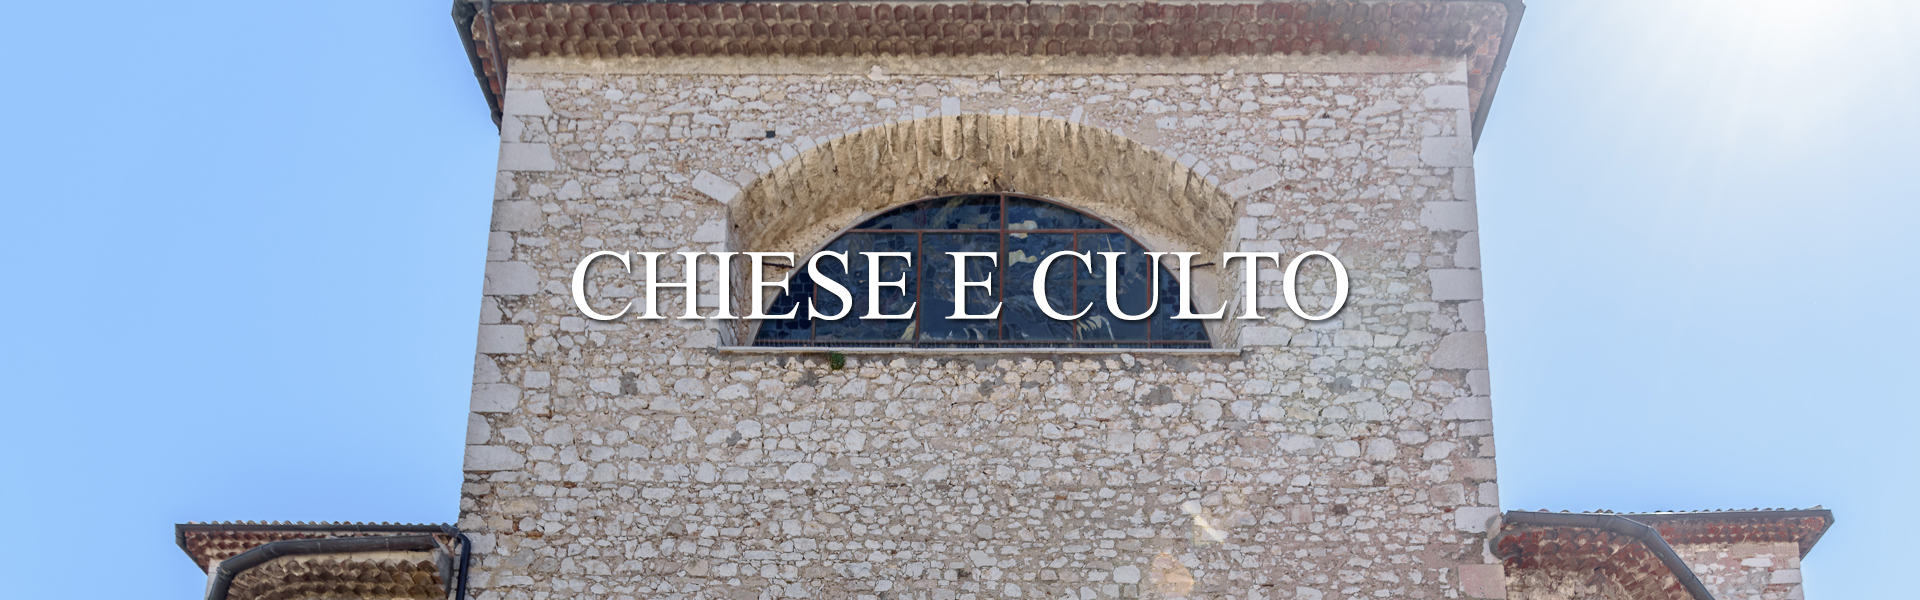 chiese-culto-1920x600